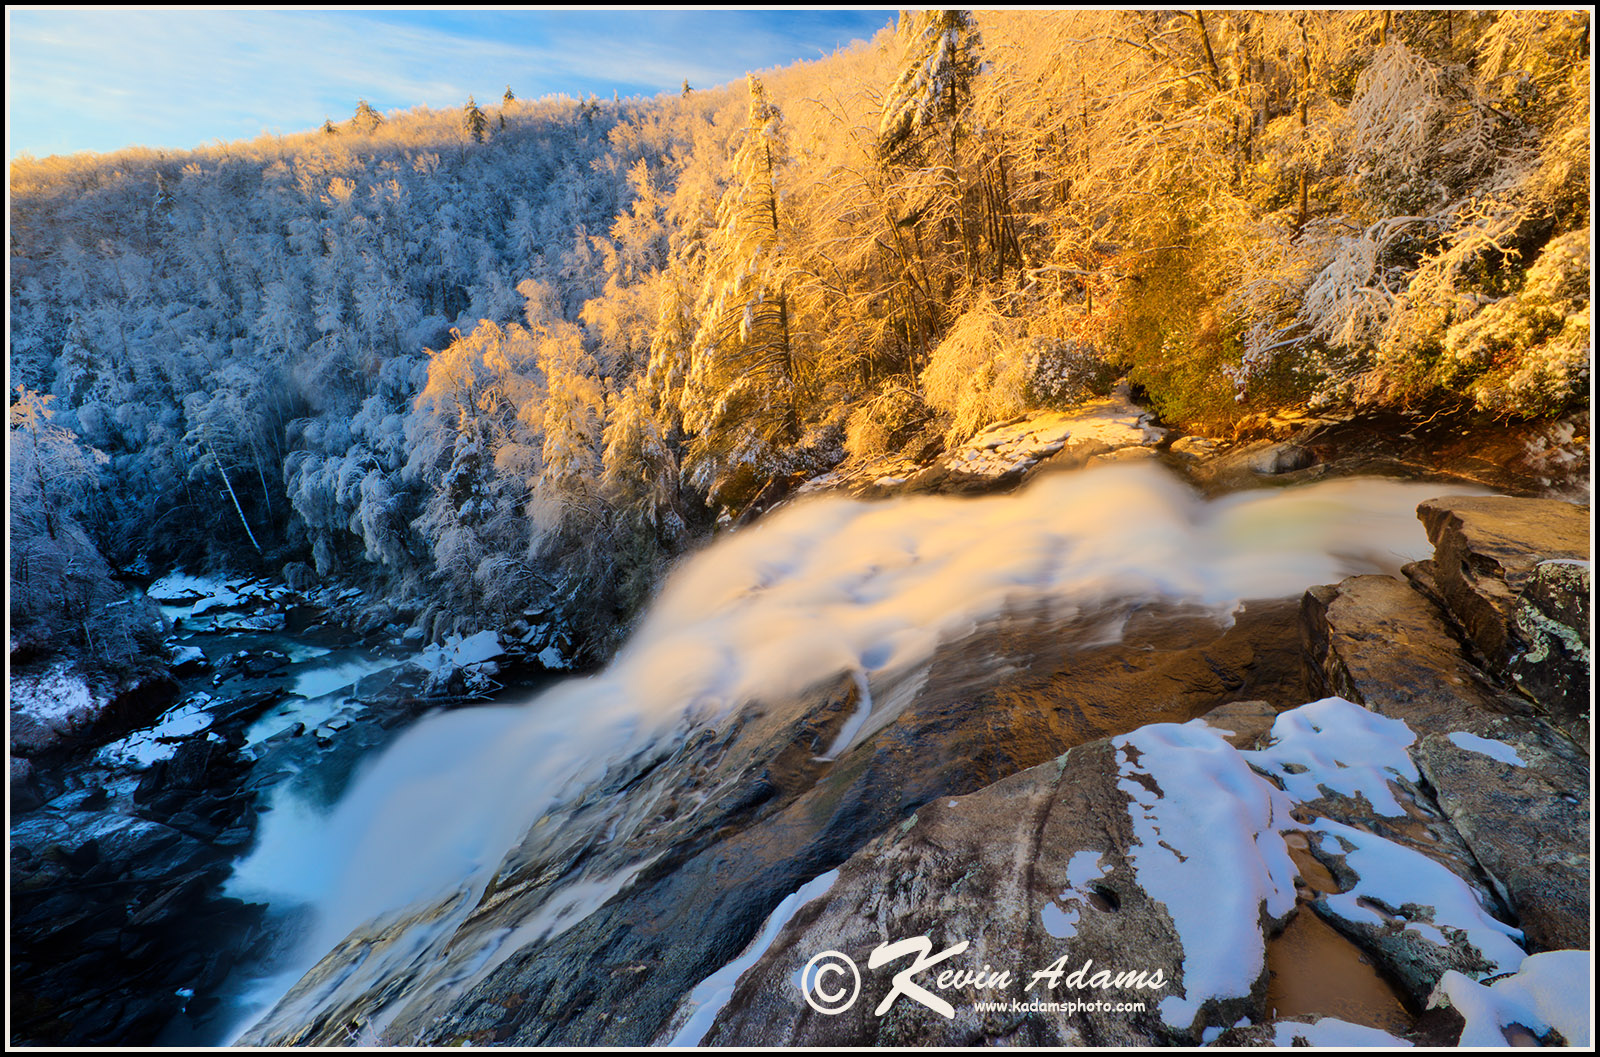 Early morning winter view of Rainbow Falls on Horsepasture Wild & Scenic River in Pisgah (formerly Nantahala) National Forest, North Carolina.